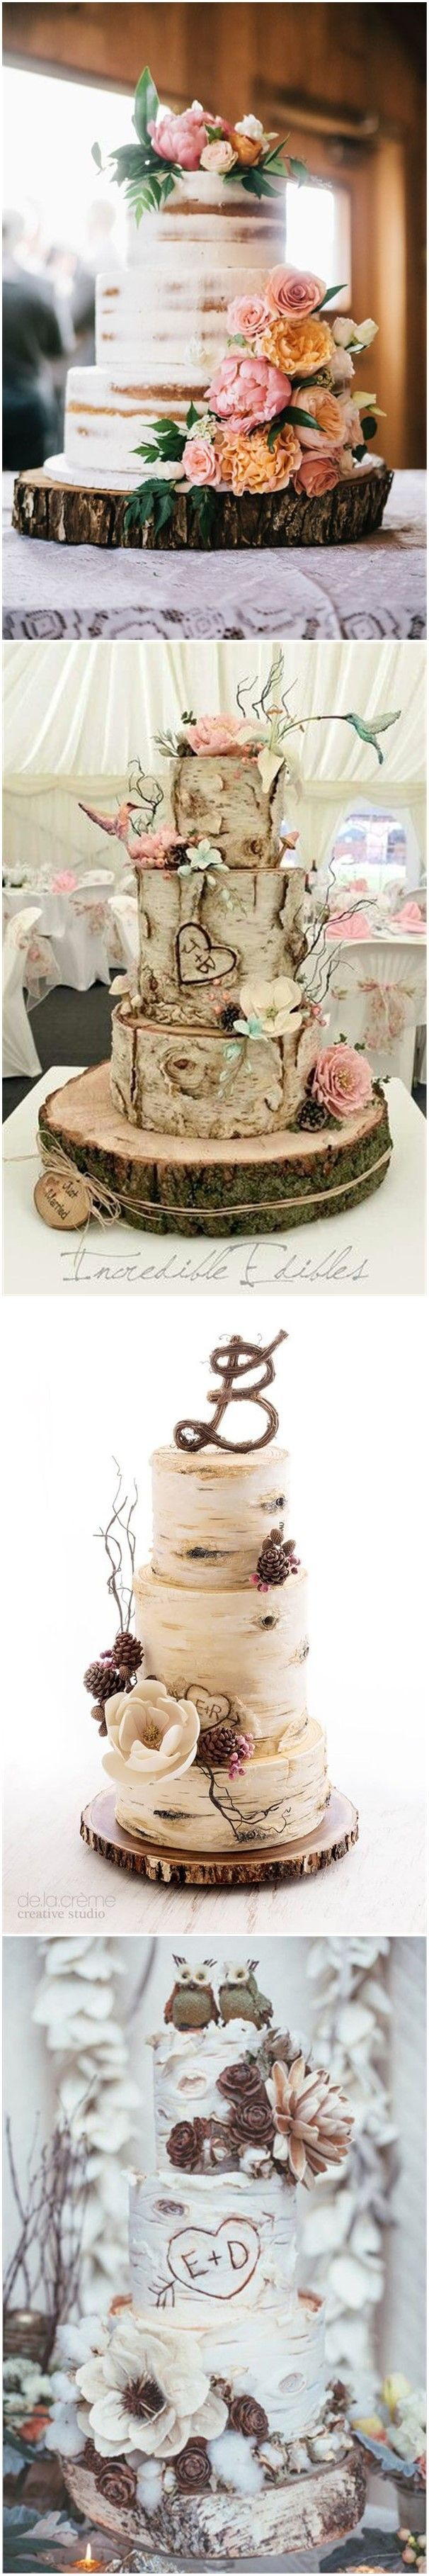 Country Weddings 20 Rustic Tree Stumps Wedding Cakes For Your Country Wedding